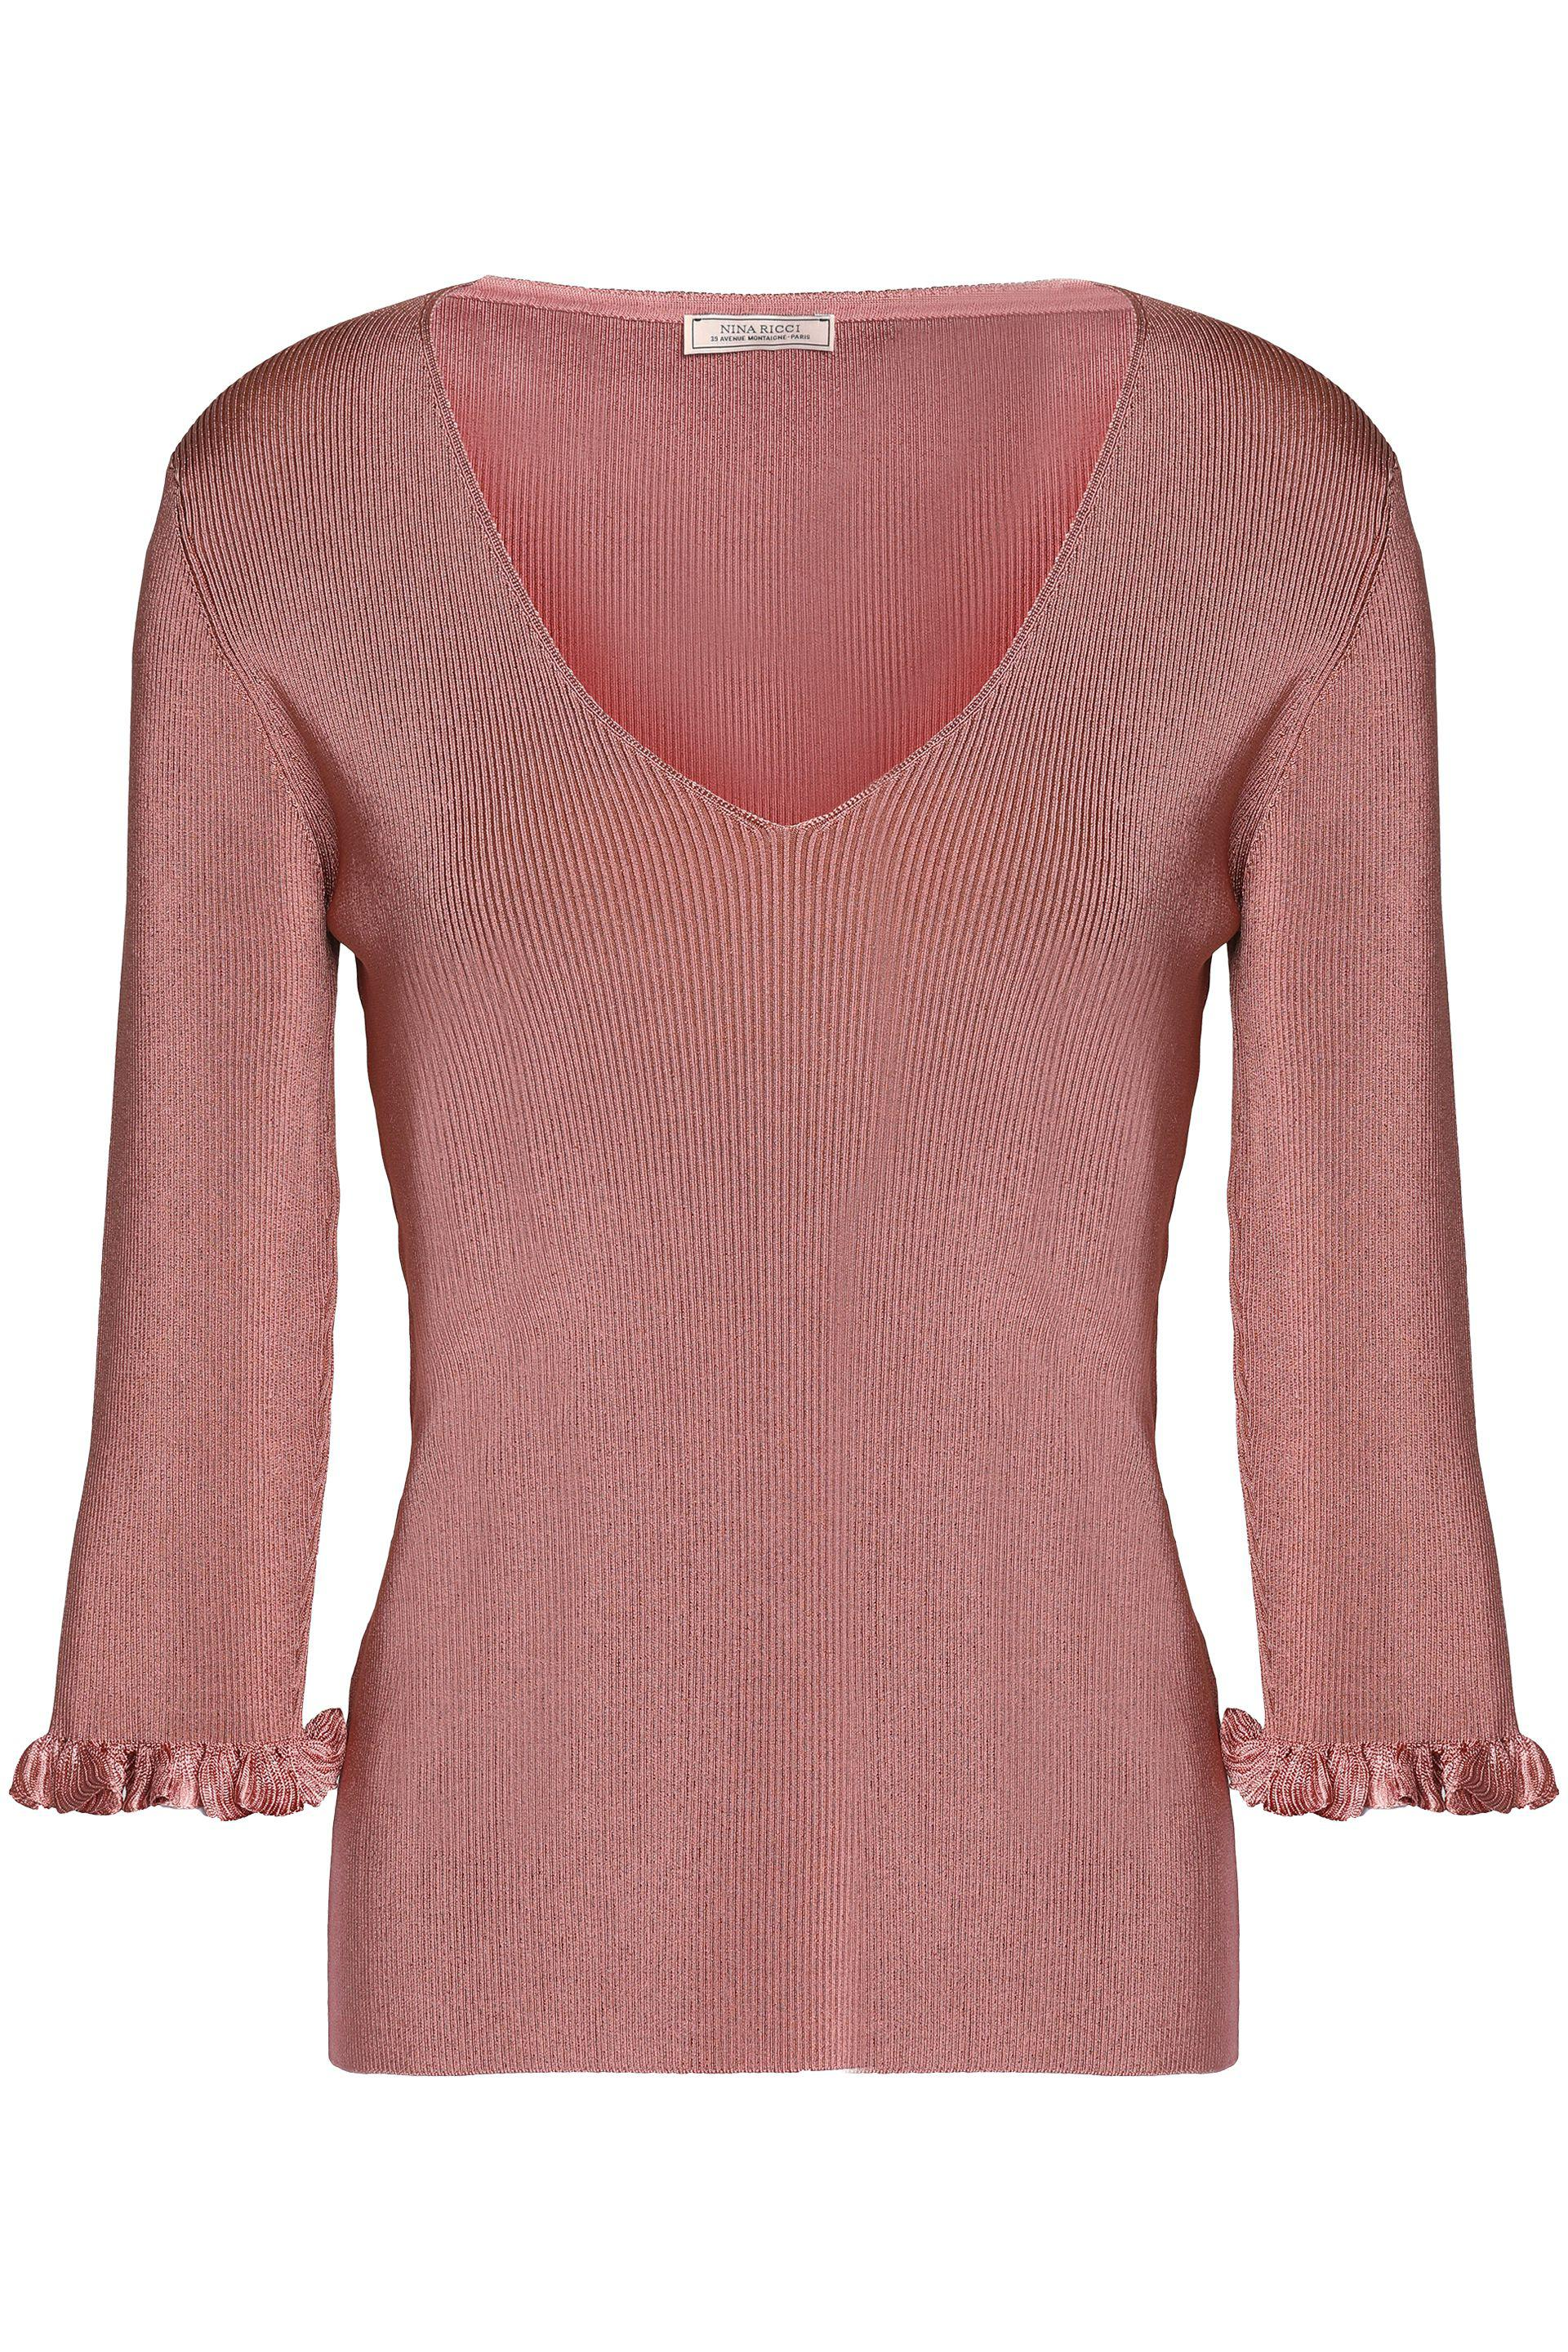 Official Cheap Online Nina Ricci Woman Chain-embellished Two-tone Knitted Top Antique Rose Size S Nina Ricci Buy Cheap Clearance Outlet Brand New Unisex Cheap Usa Stockist Lowest Price KDHg3zV